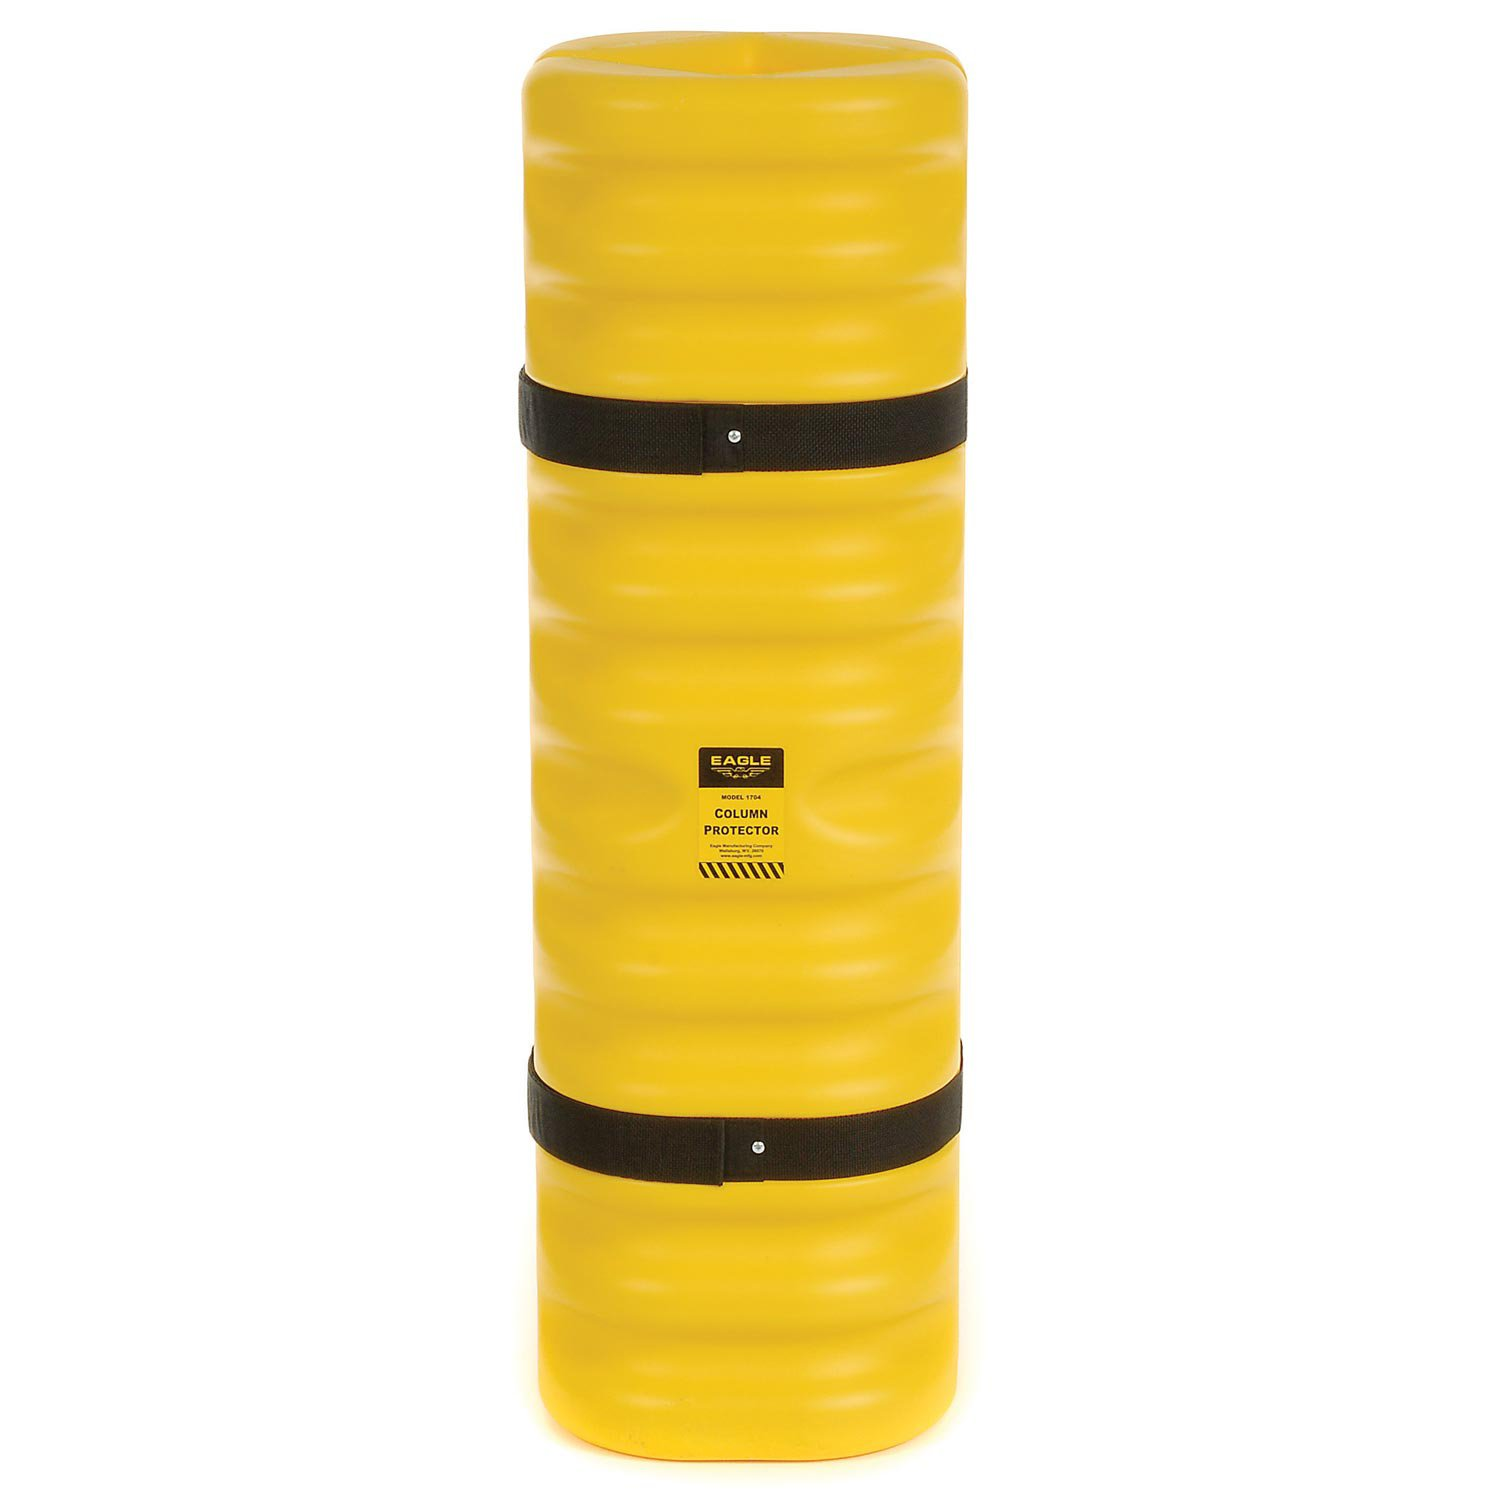 Eagle 1704 Blow-Molded High Density Polyethylene Column Protector for 4''-6'' Column with Easy to Install Straps, Yellow, 13'' Length, 13'' Width, 42'' Height